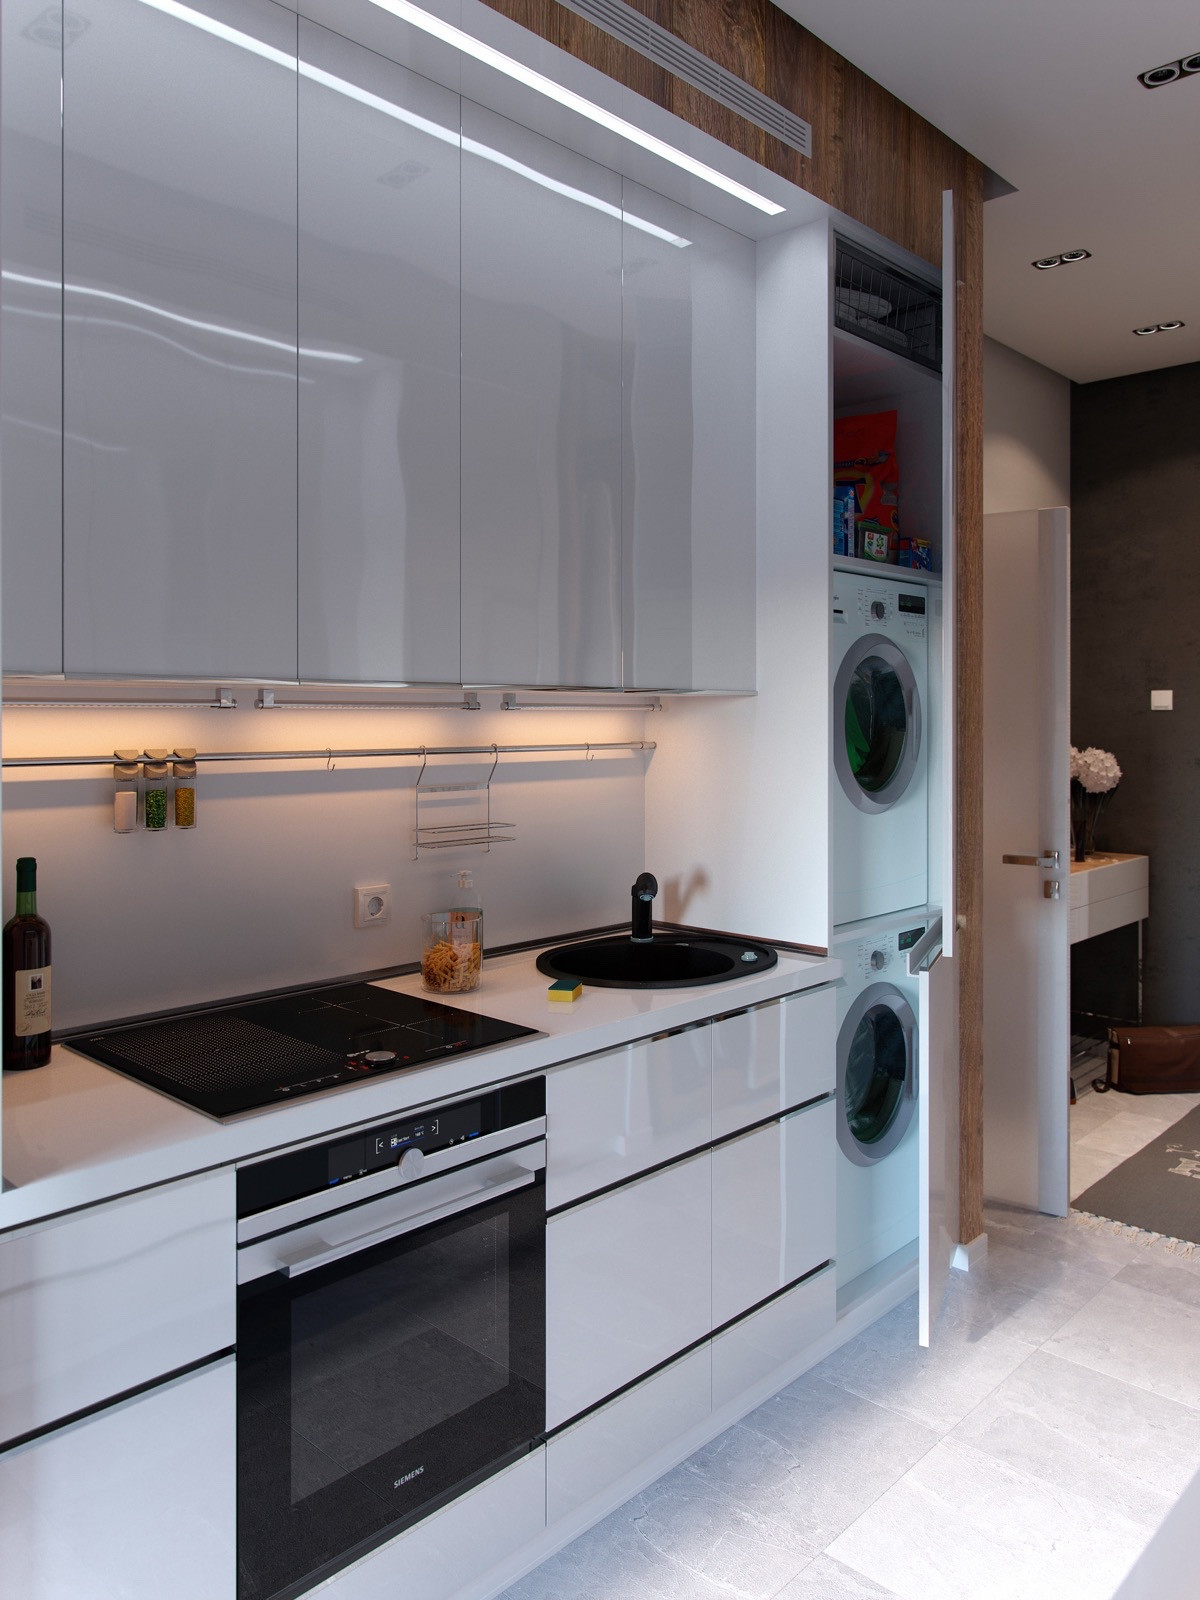 Best ideas about Laundry In Kitchen . Save or Pin Bold Decor In Small Spaces 3 Homes Under 50 Square Meters Now.